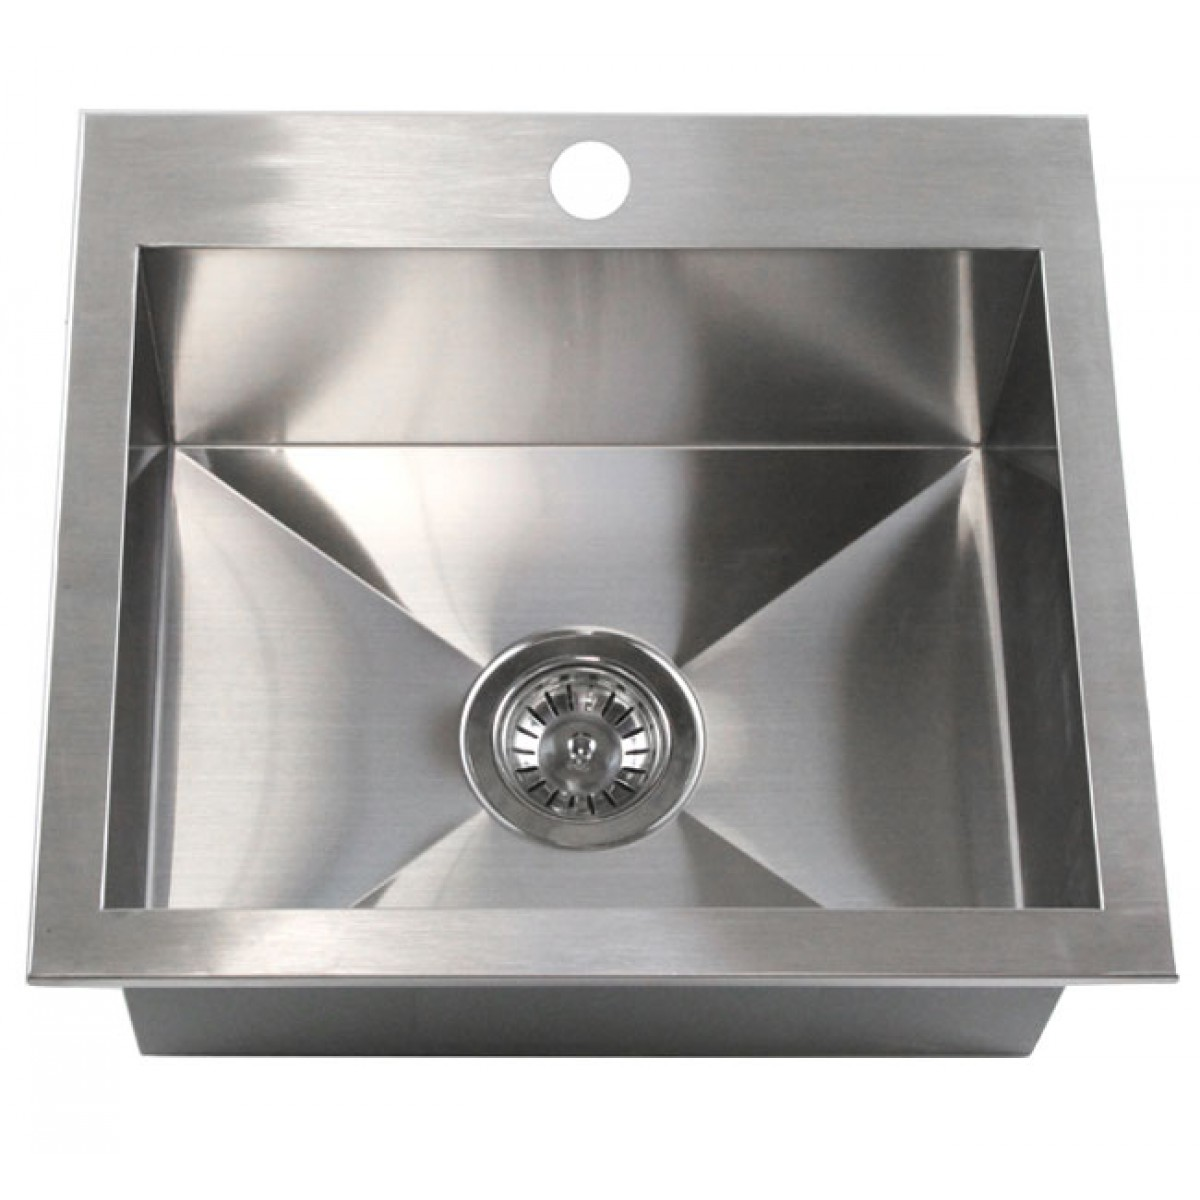 19 Inch Top-Mount / Drop-In Stainless Steel Single Bowl Kitchen ...